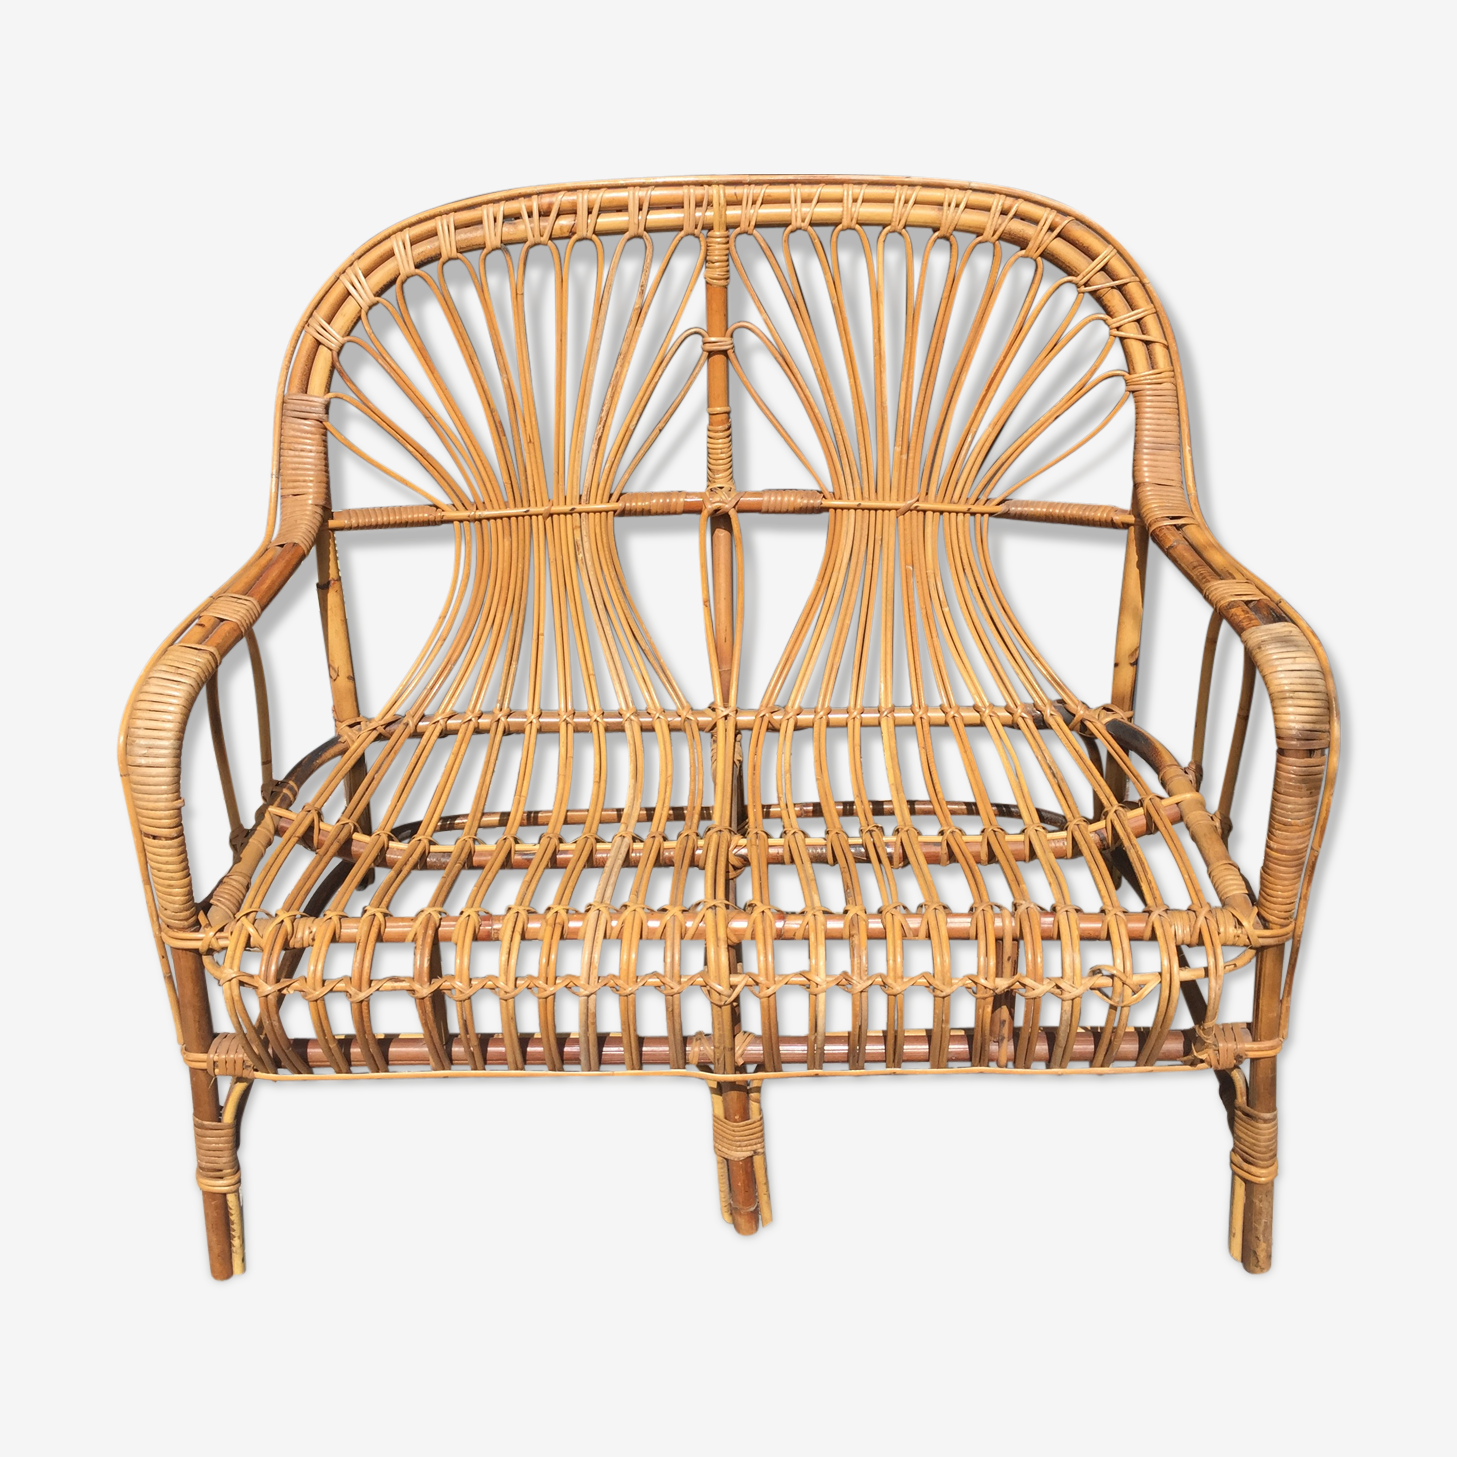 Vintage rattan and bamboo bench